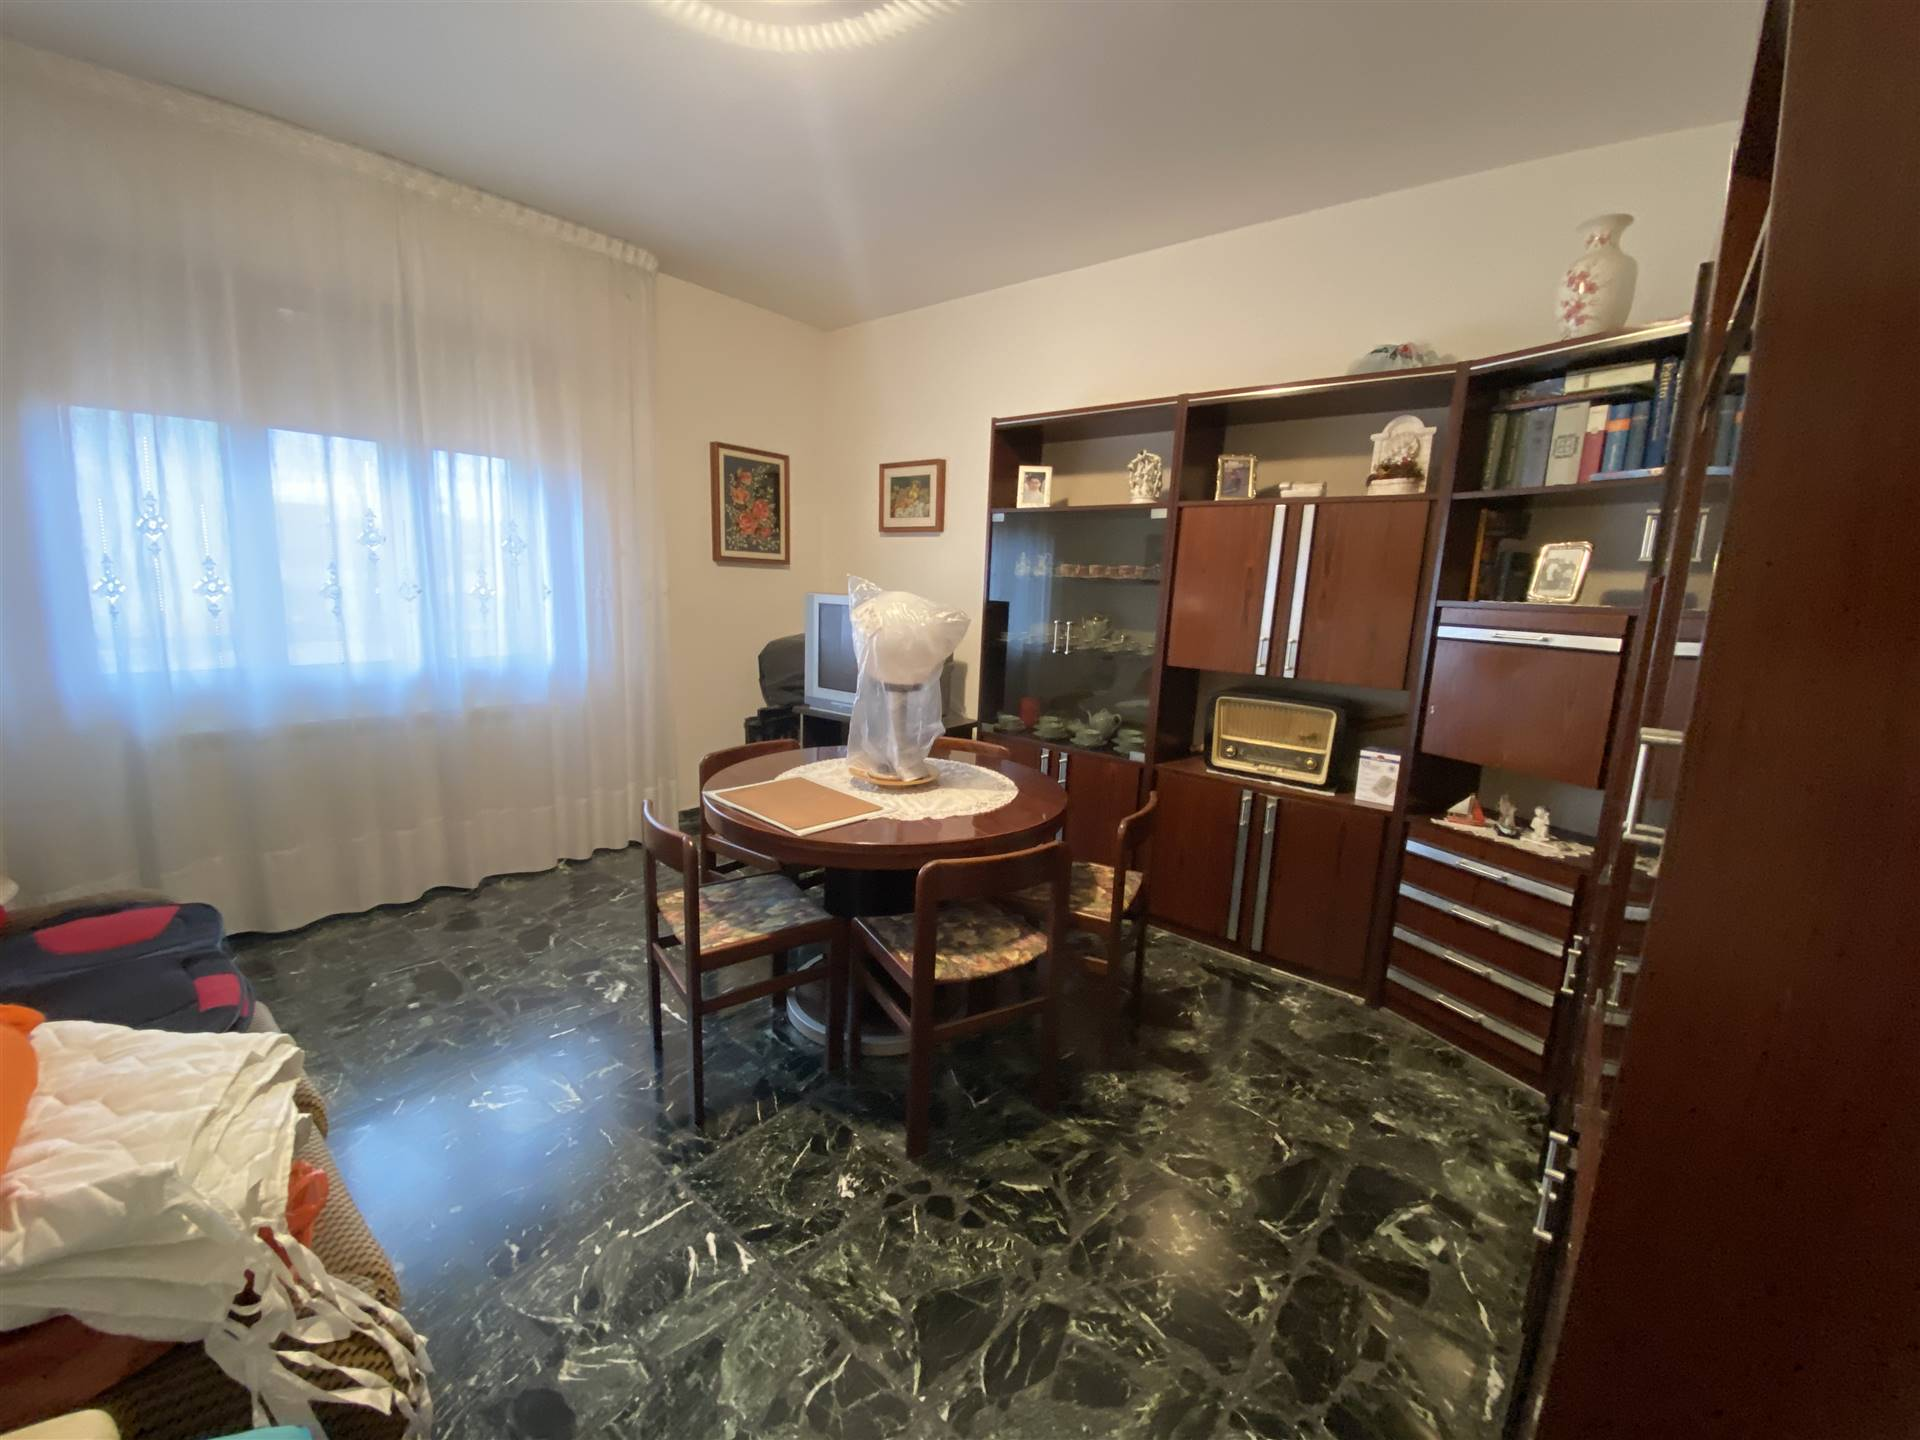 SOTTOMARINA, CHIOGGIA, Apartment for sale, Be restored, Heating Individual heating system, Energetic class: G, placed at 4°, composed by: 4 Rooms,